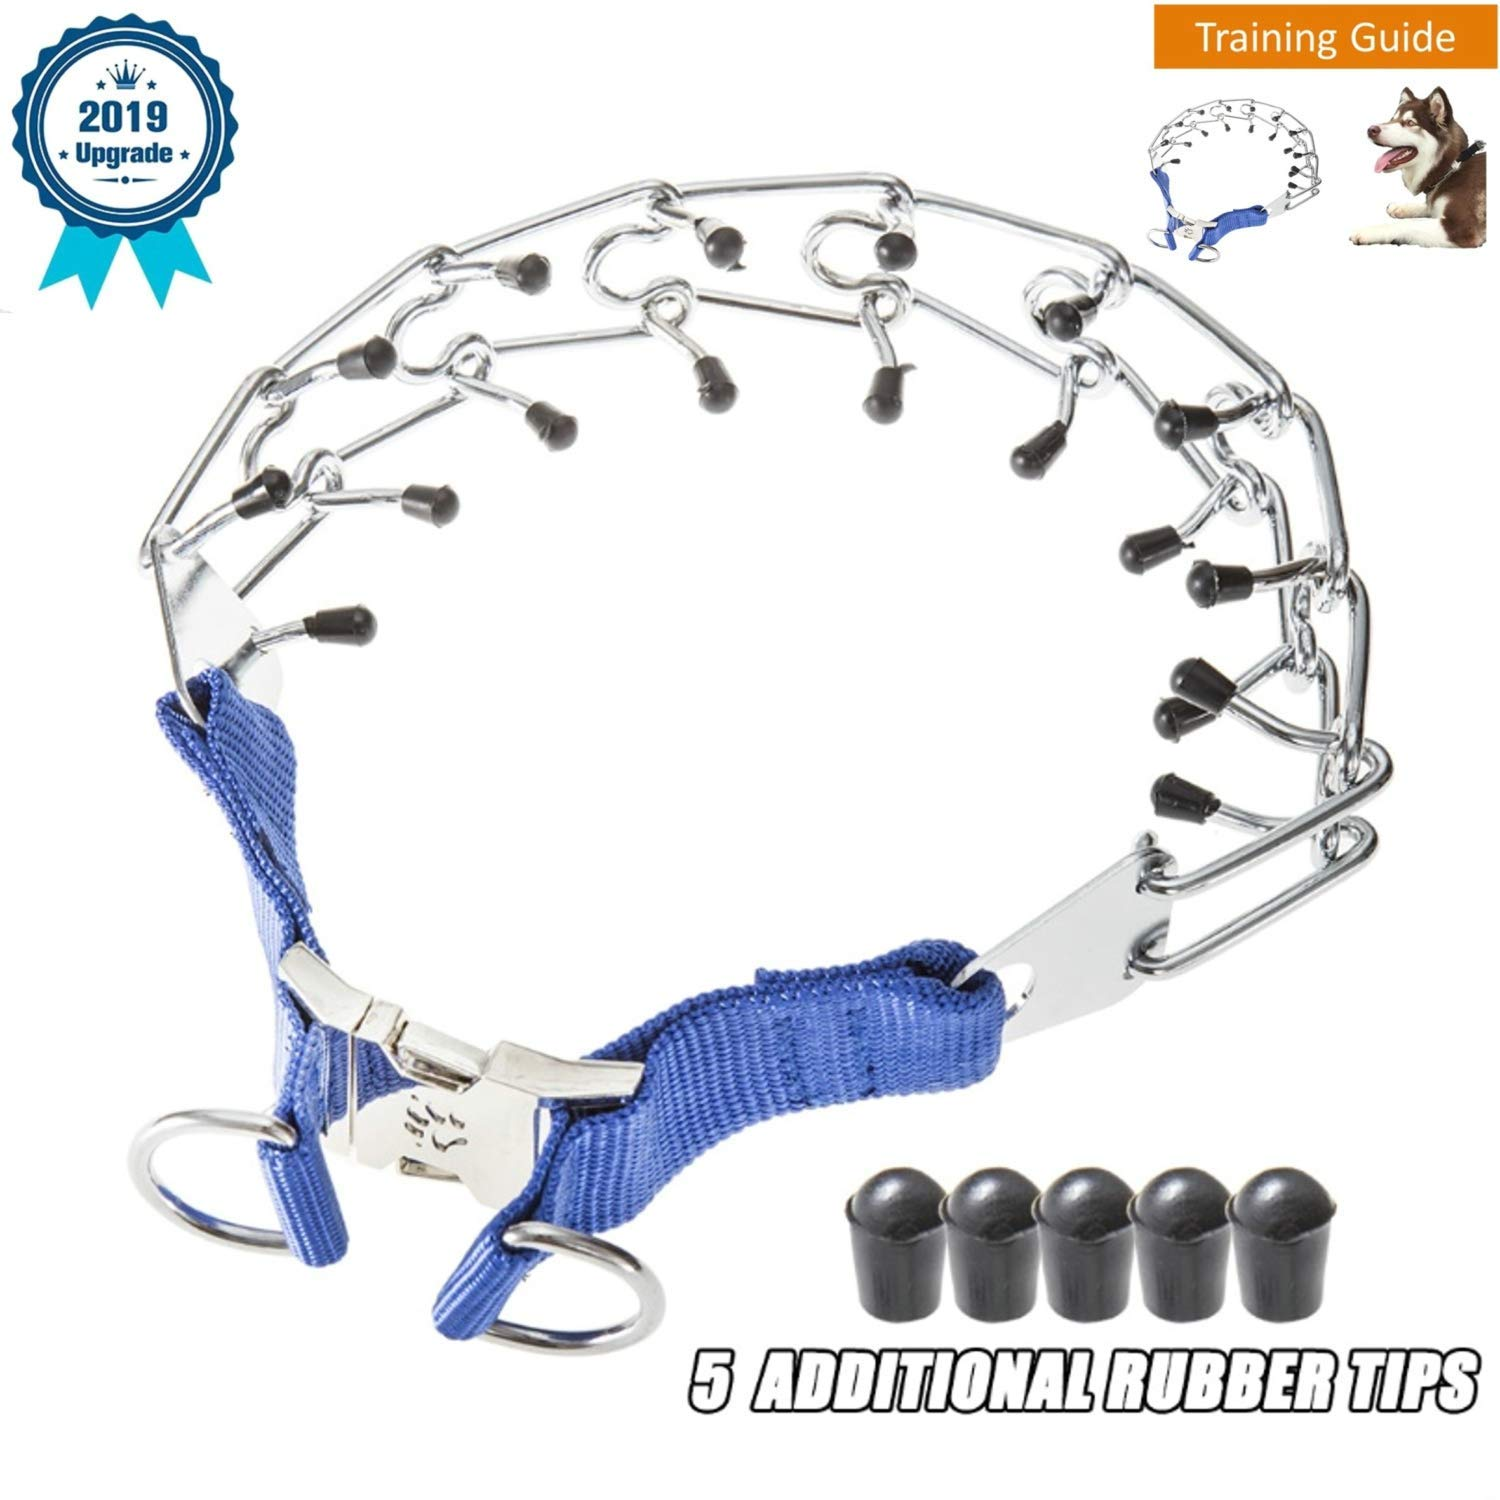 DEYACE Dog Prong Collar, Dog Pinch Collar with Quick Release Snap Buckle, Durable Stainless Steel Dog Pinch Training Collars for Large Dogs by Deyace